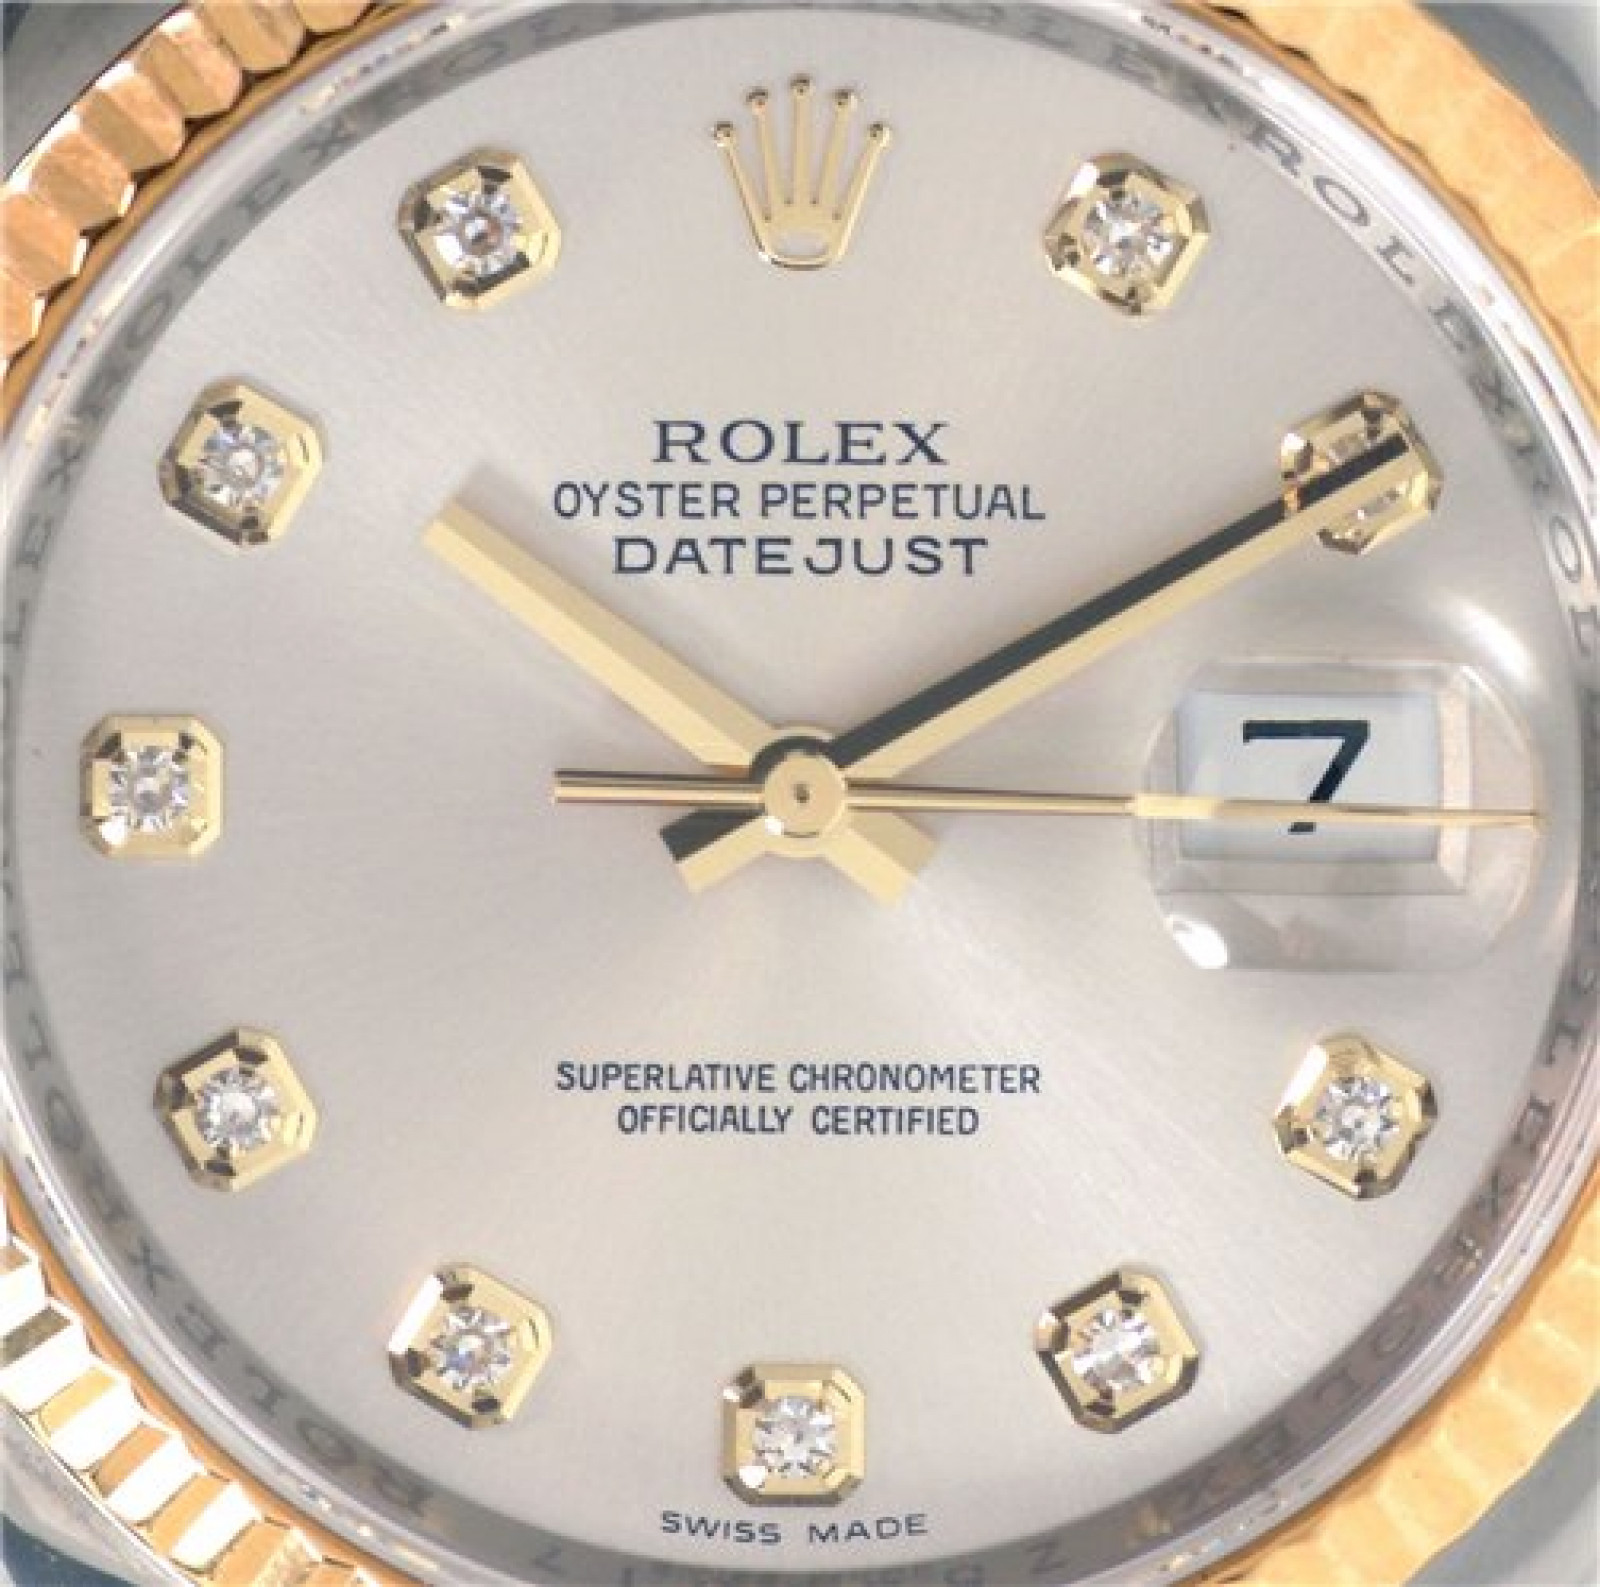 Rolex Datejust 116233 with Diamonds on Silver Dial